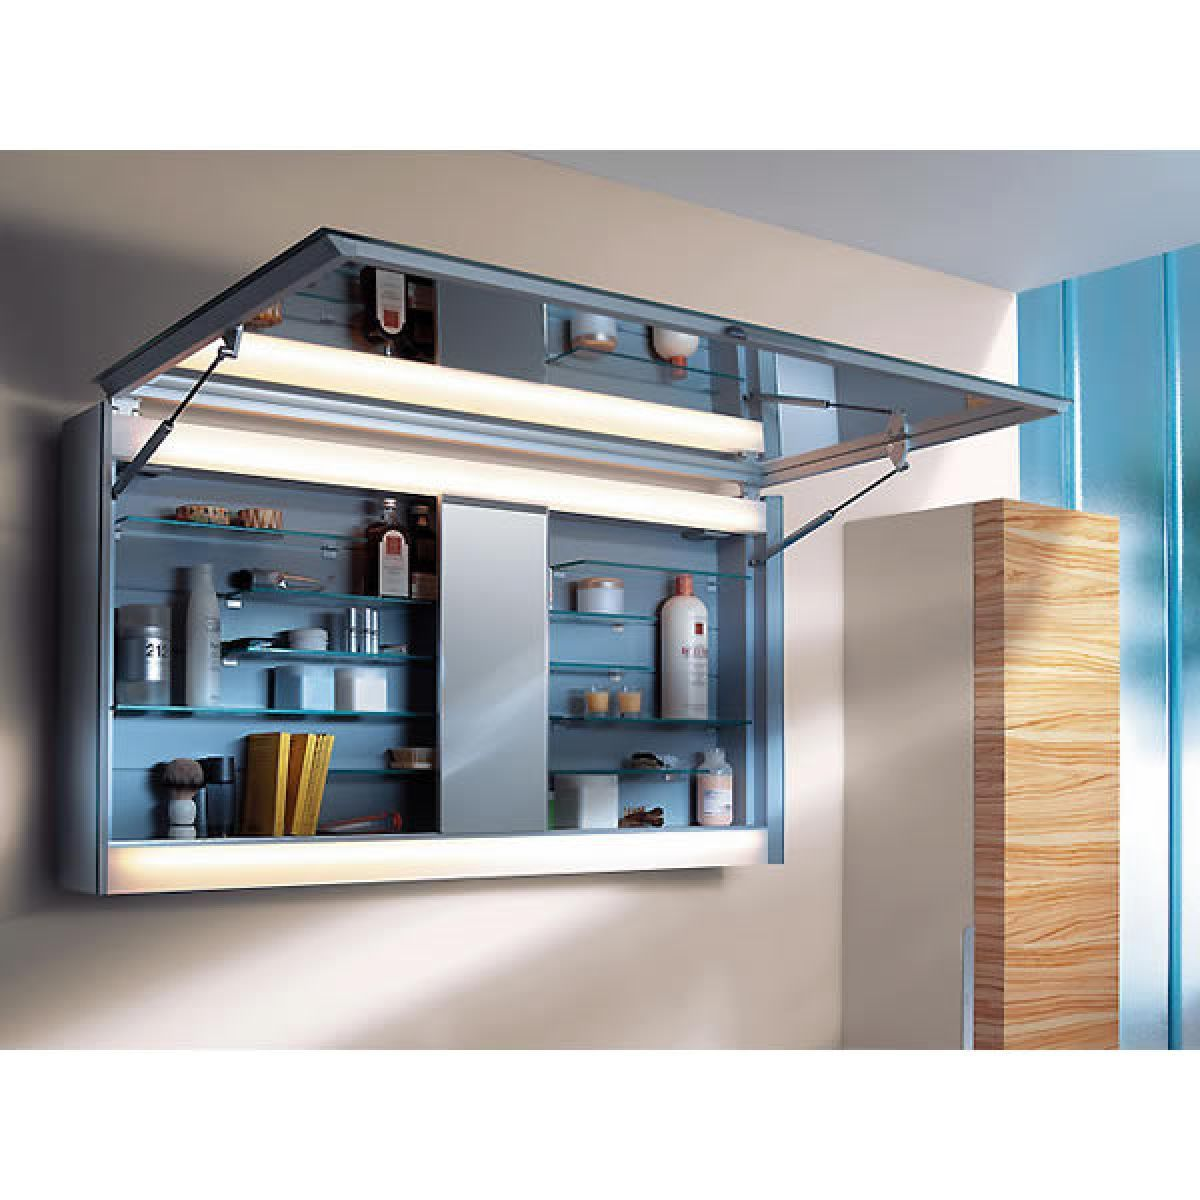 Bathroom Cabinets Keuco amazing storage and cool smooth action hydraulic door. keuco